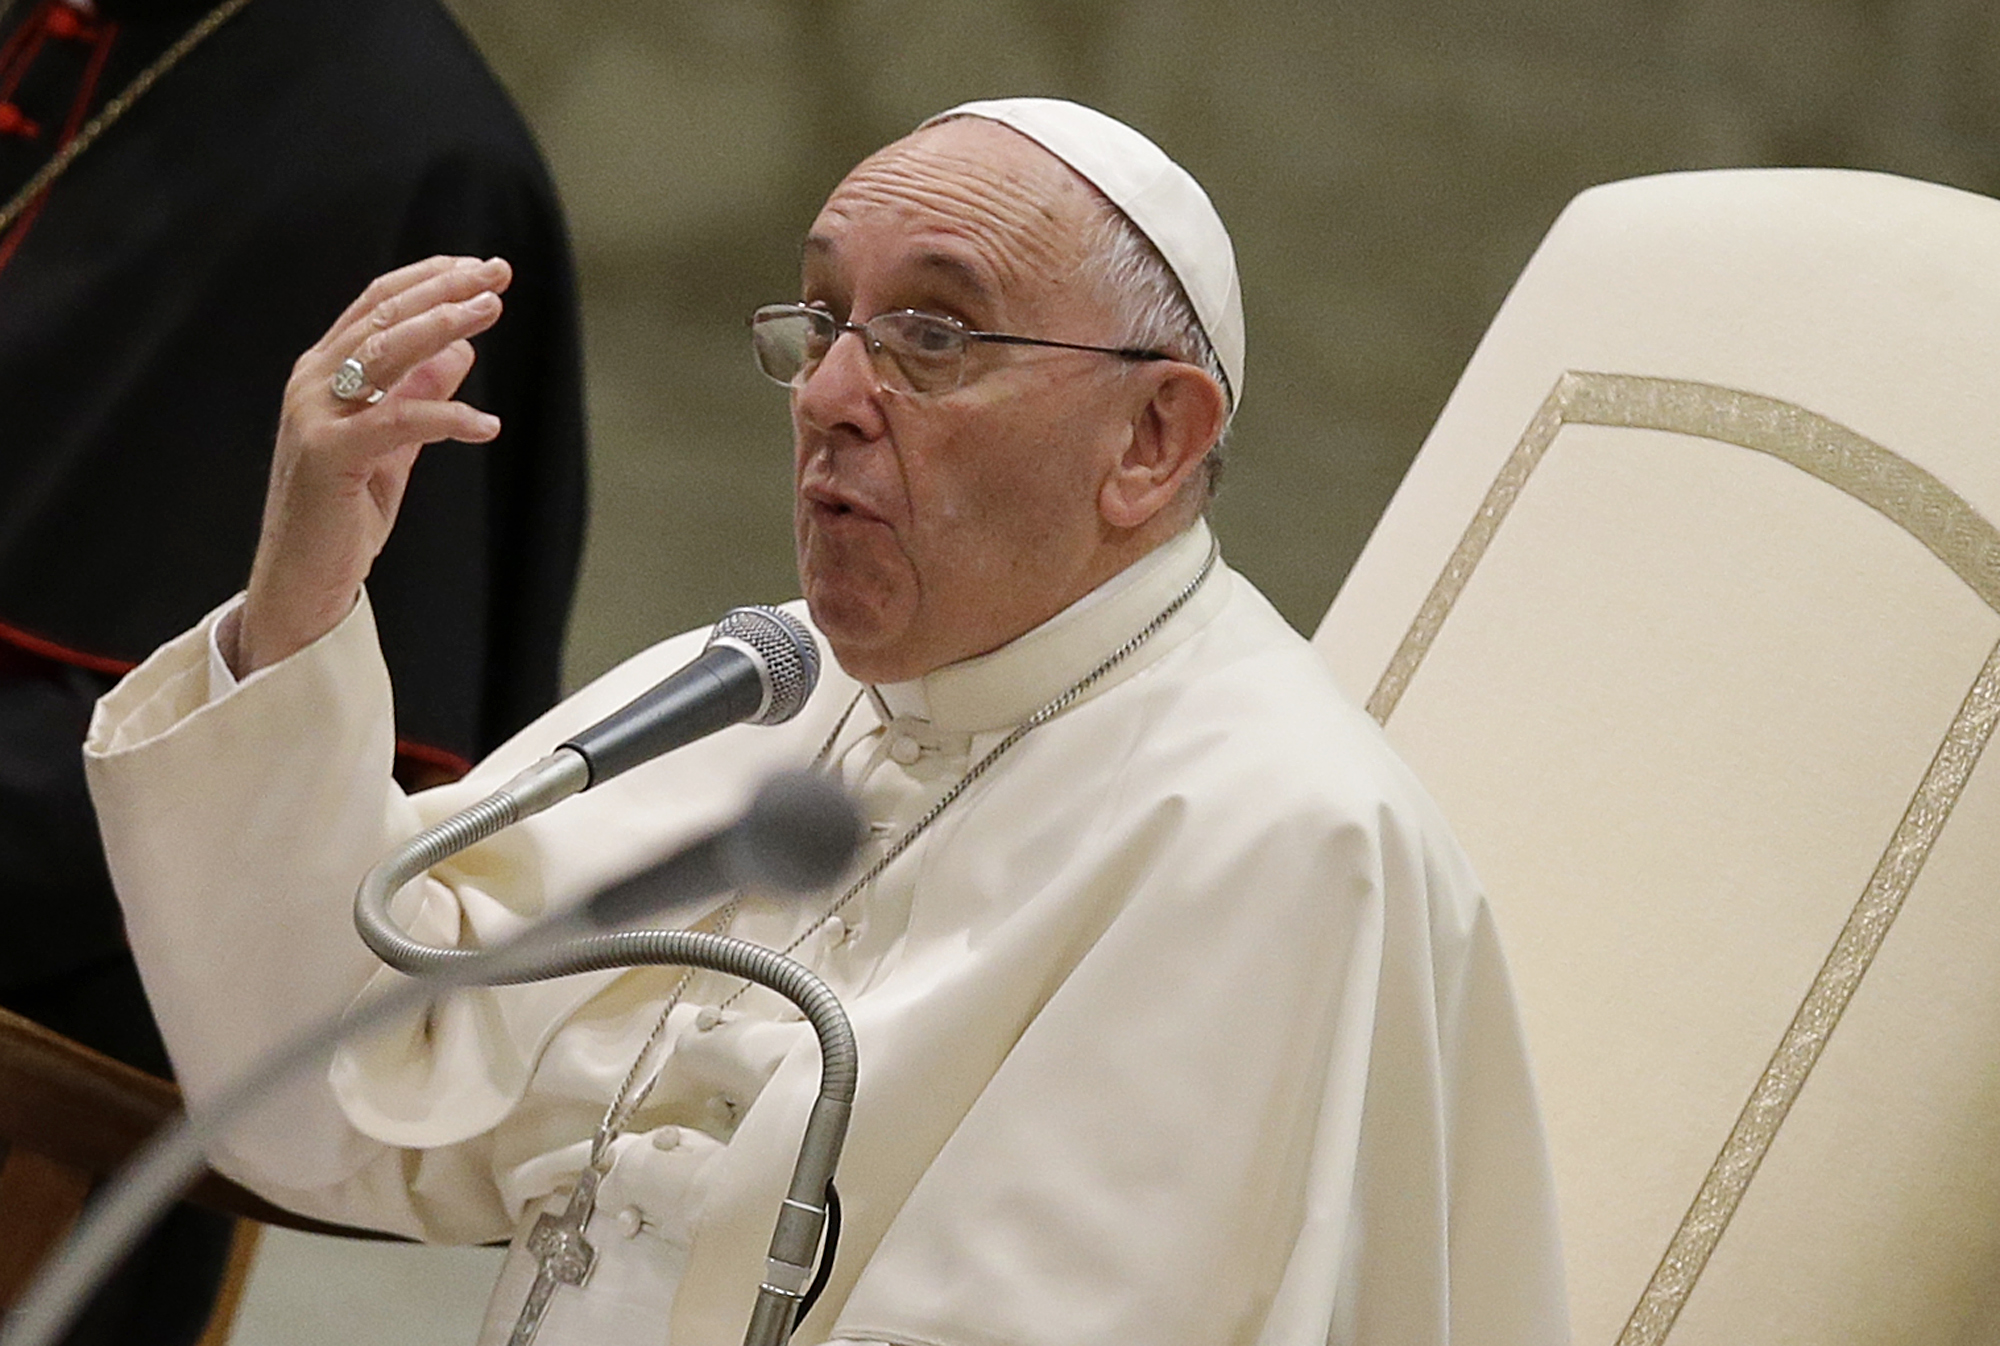 Public to have limited chances to see Pope Francis in D.C.